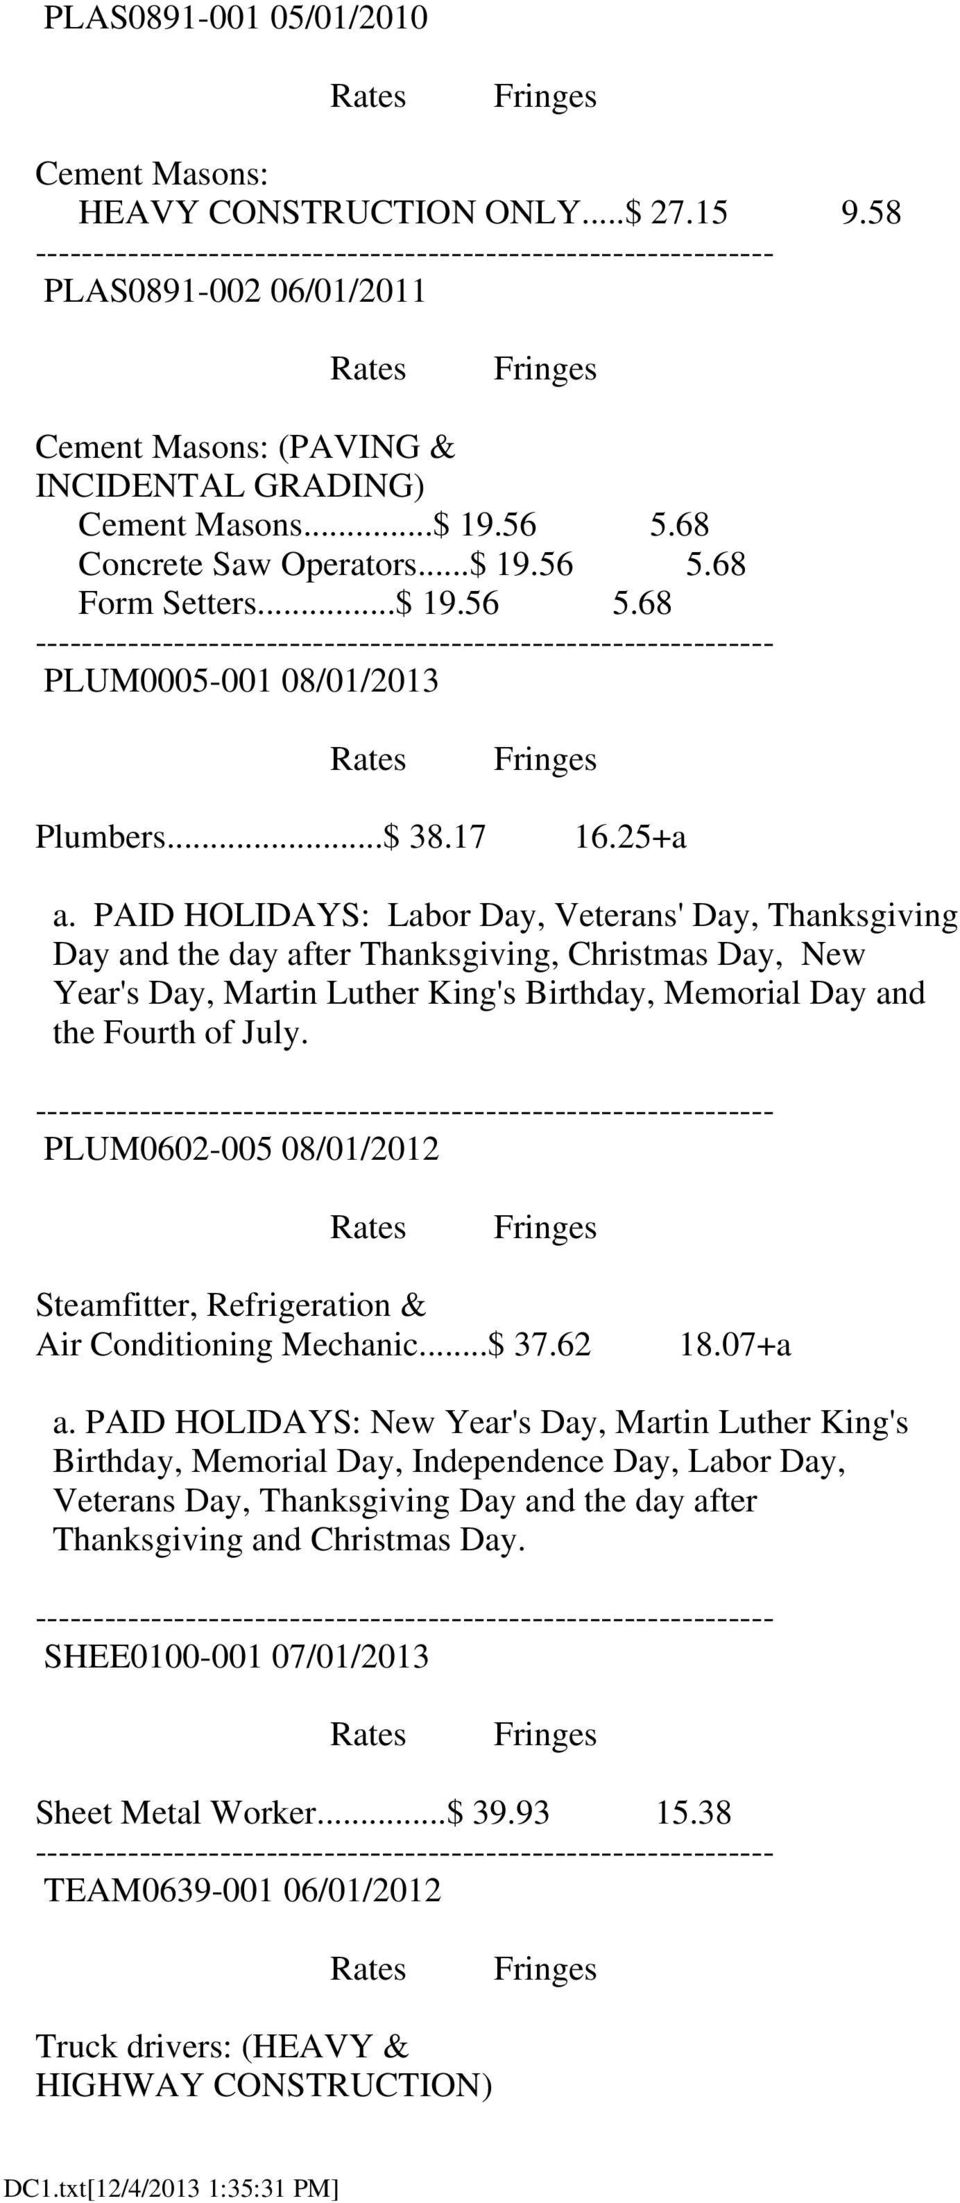 PAID HOLIDAYS: Labor Day, Veterans' Day, Thanksgiving Day and the day after Thanksgiving, Christmas Day, New Year's Day, Martin Luther King's Birthday, Memorial Day and the Fourth of July.